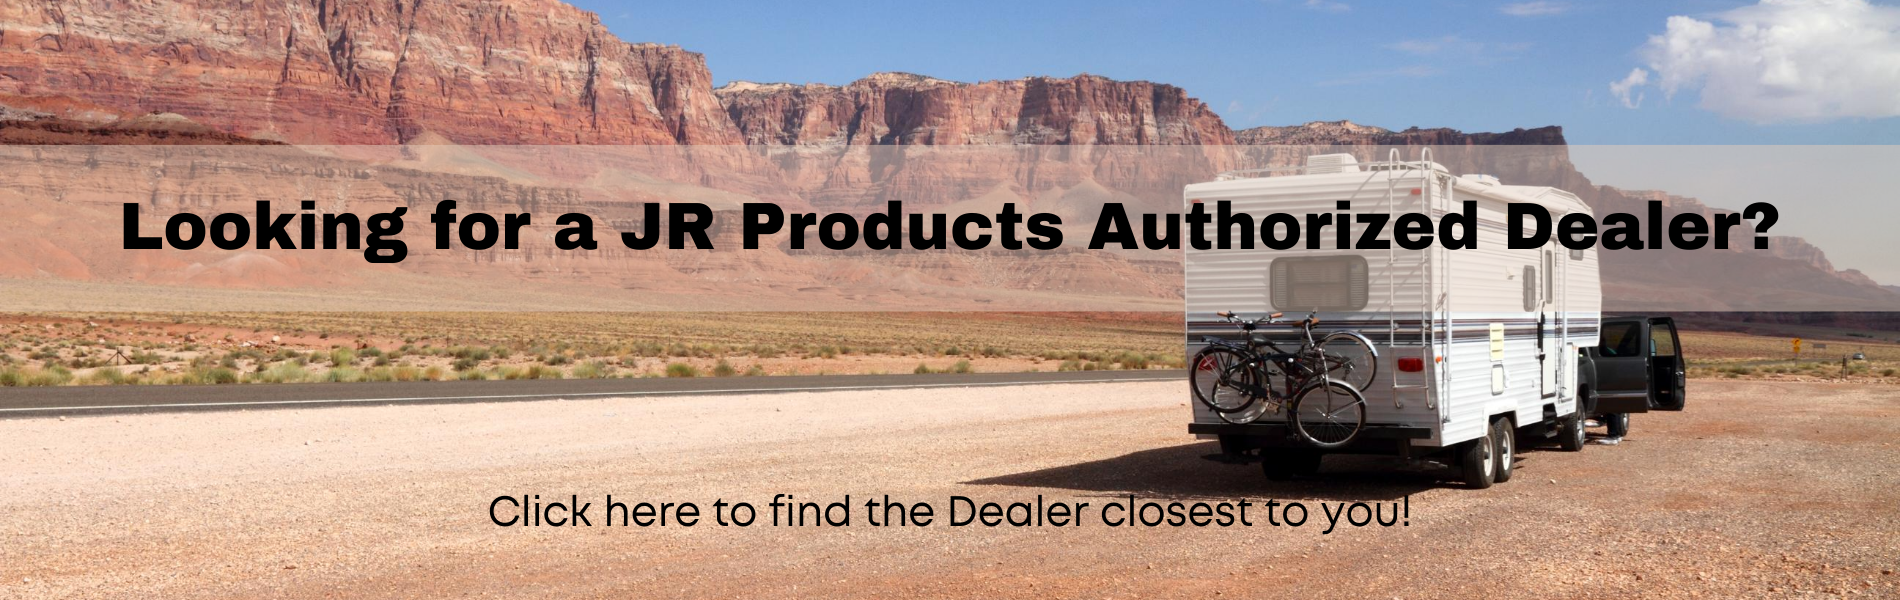 Looking for a JR Products Authorized Dealer_